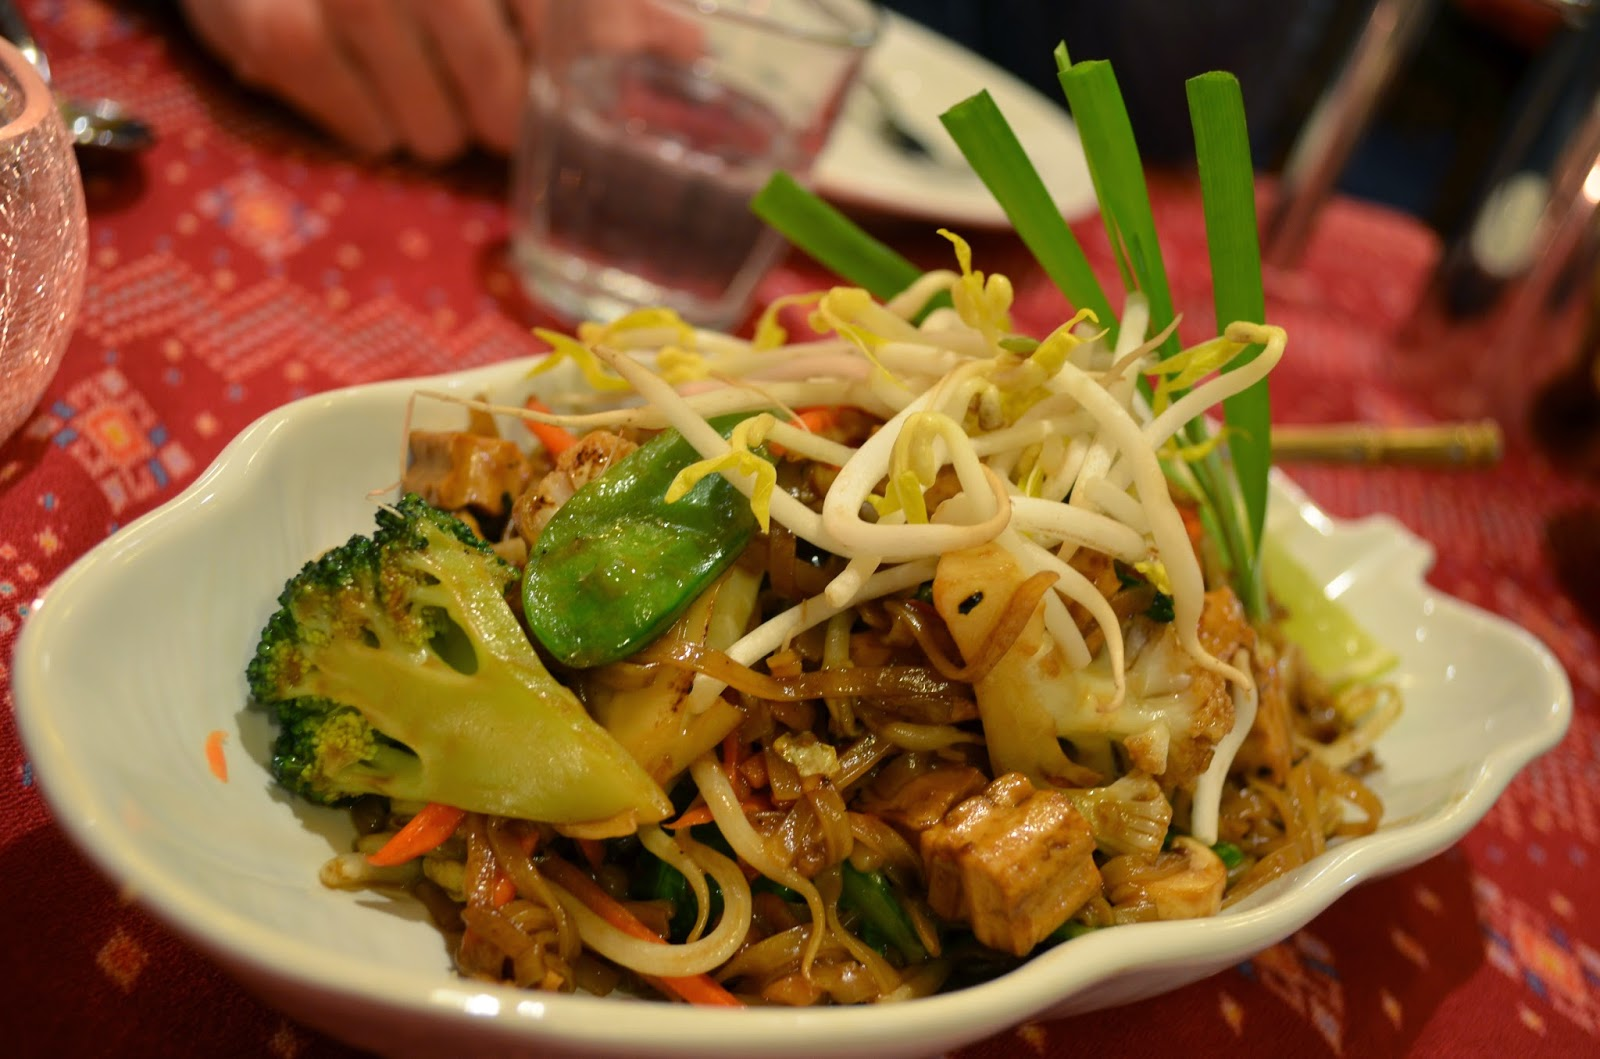 Tofu pad thai - no egg